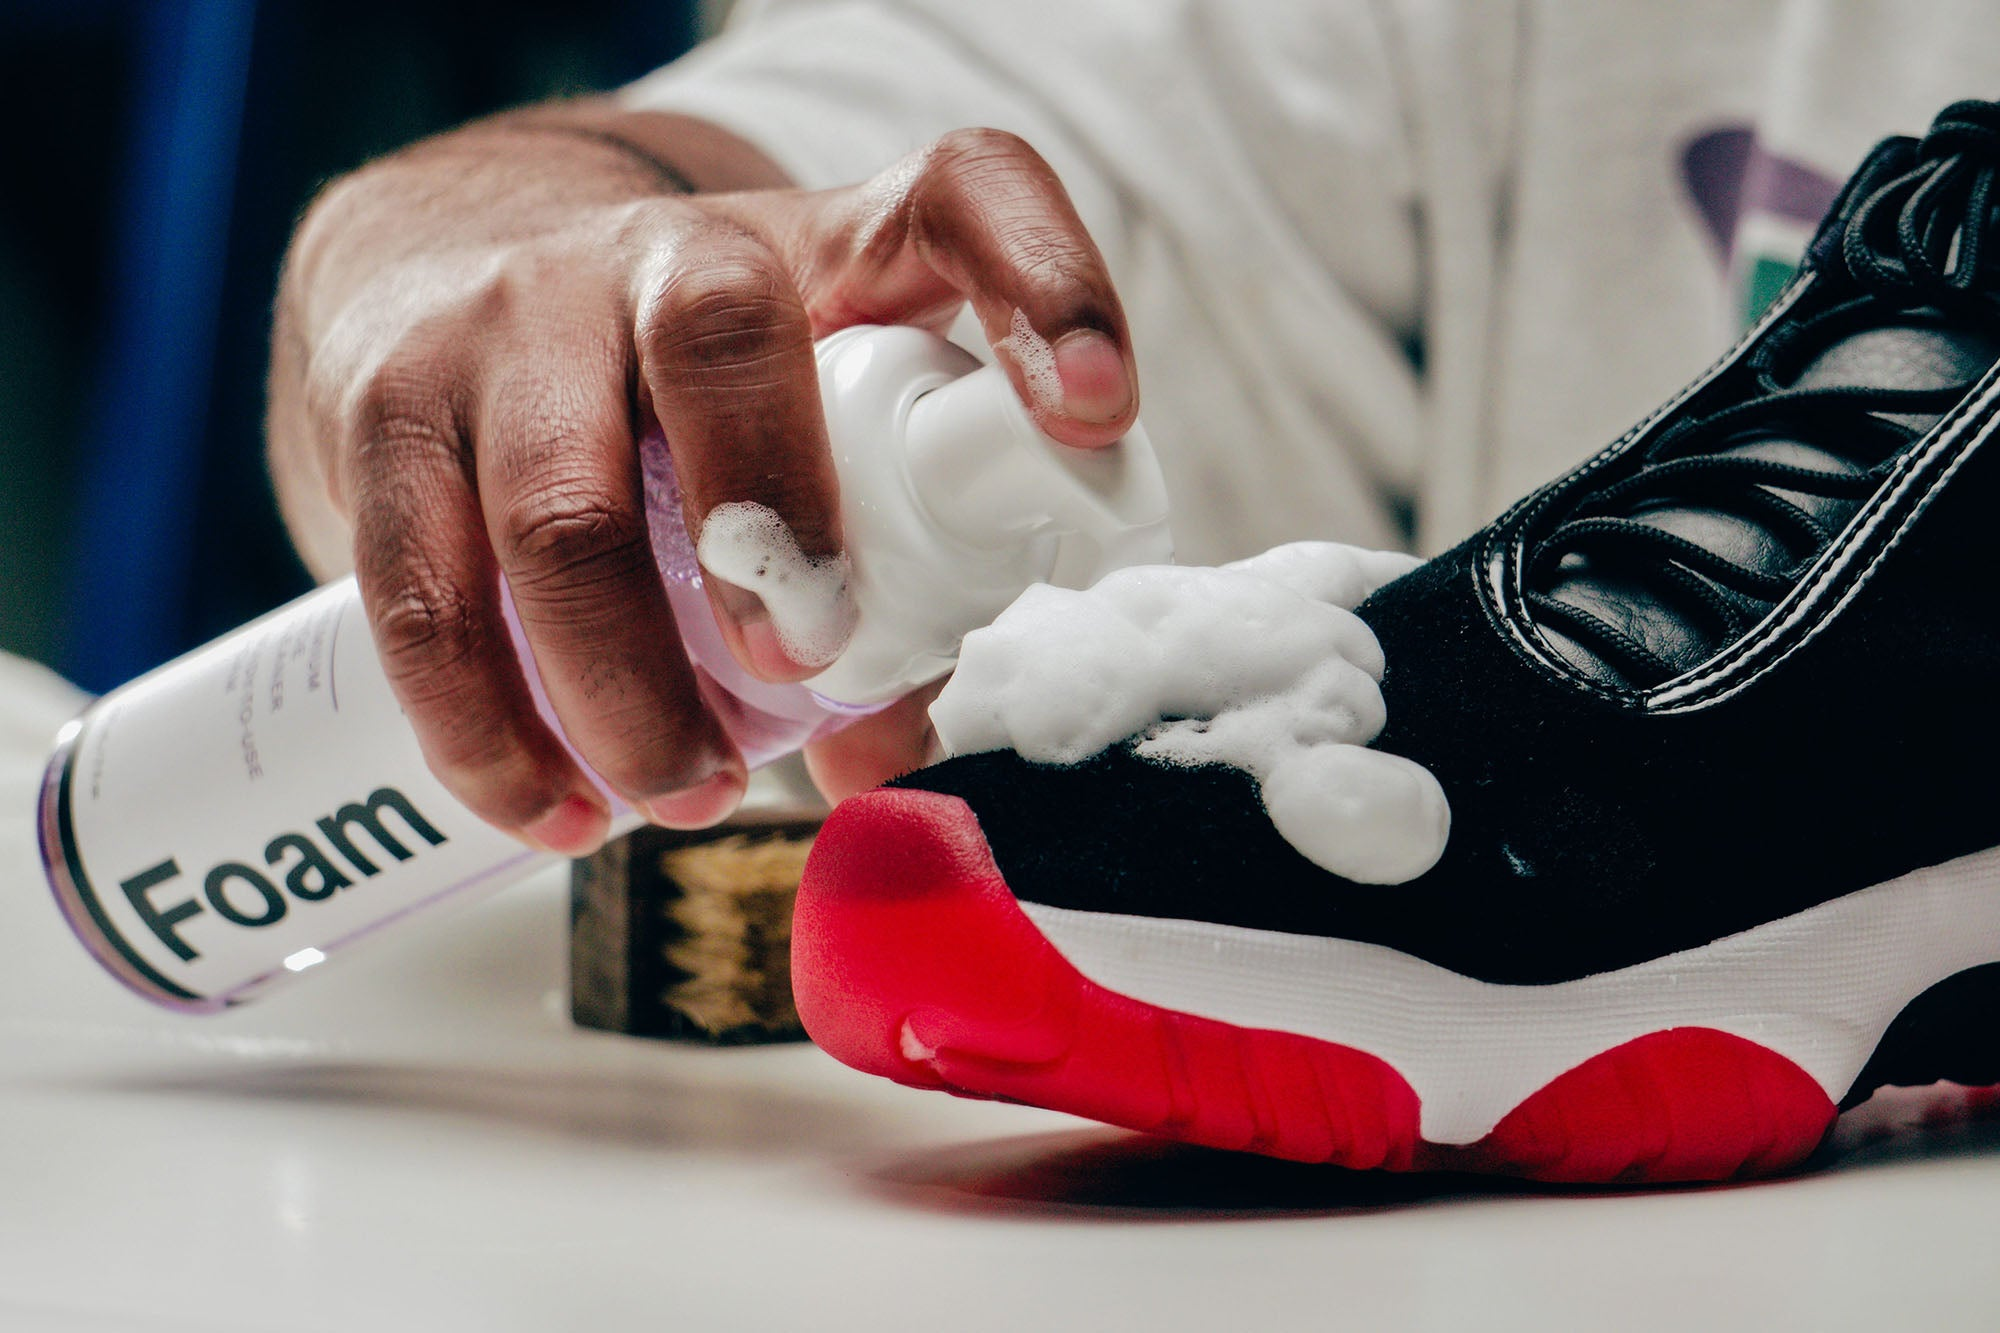 Jason Markk Sneaker Care 101 How to clean Suede shoes step 9